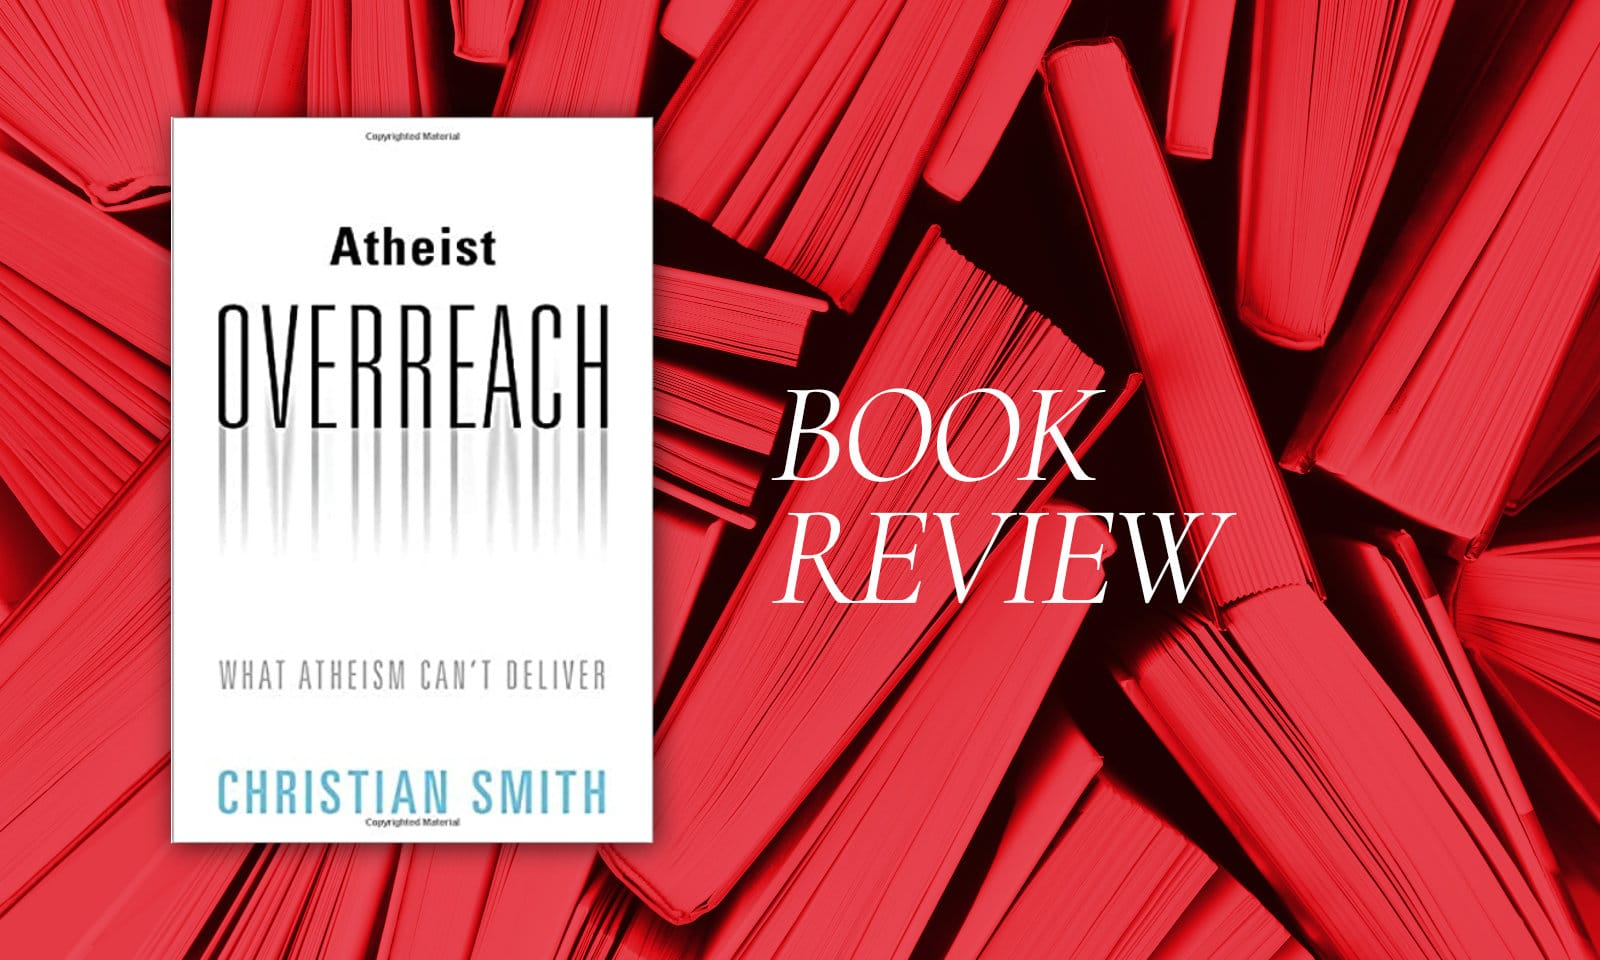 Book Review: Atheist Overreach: What Atheism Can't Deliver (Smith)